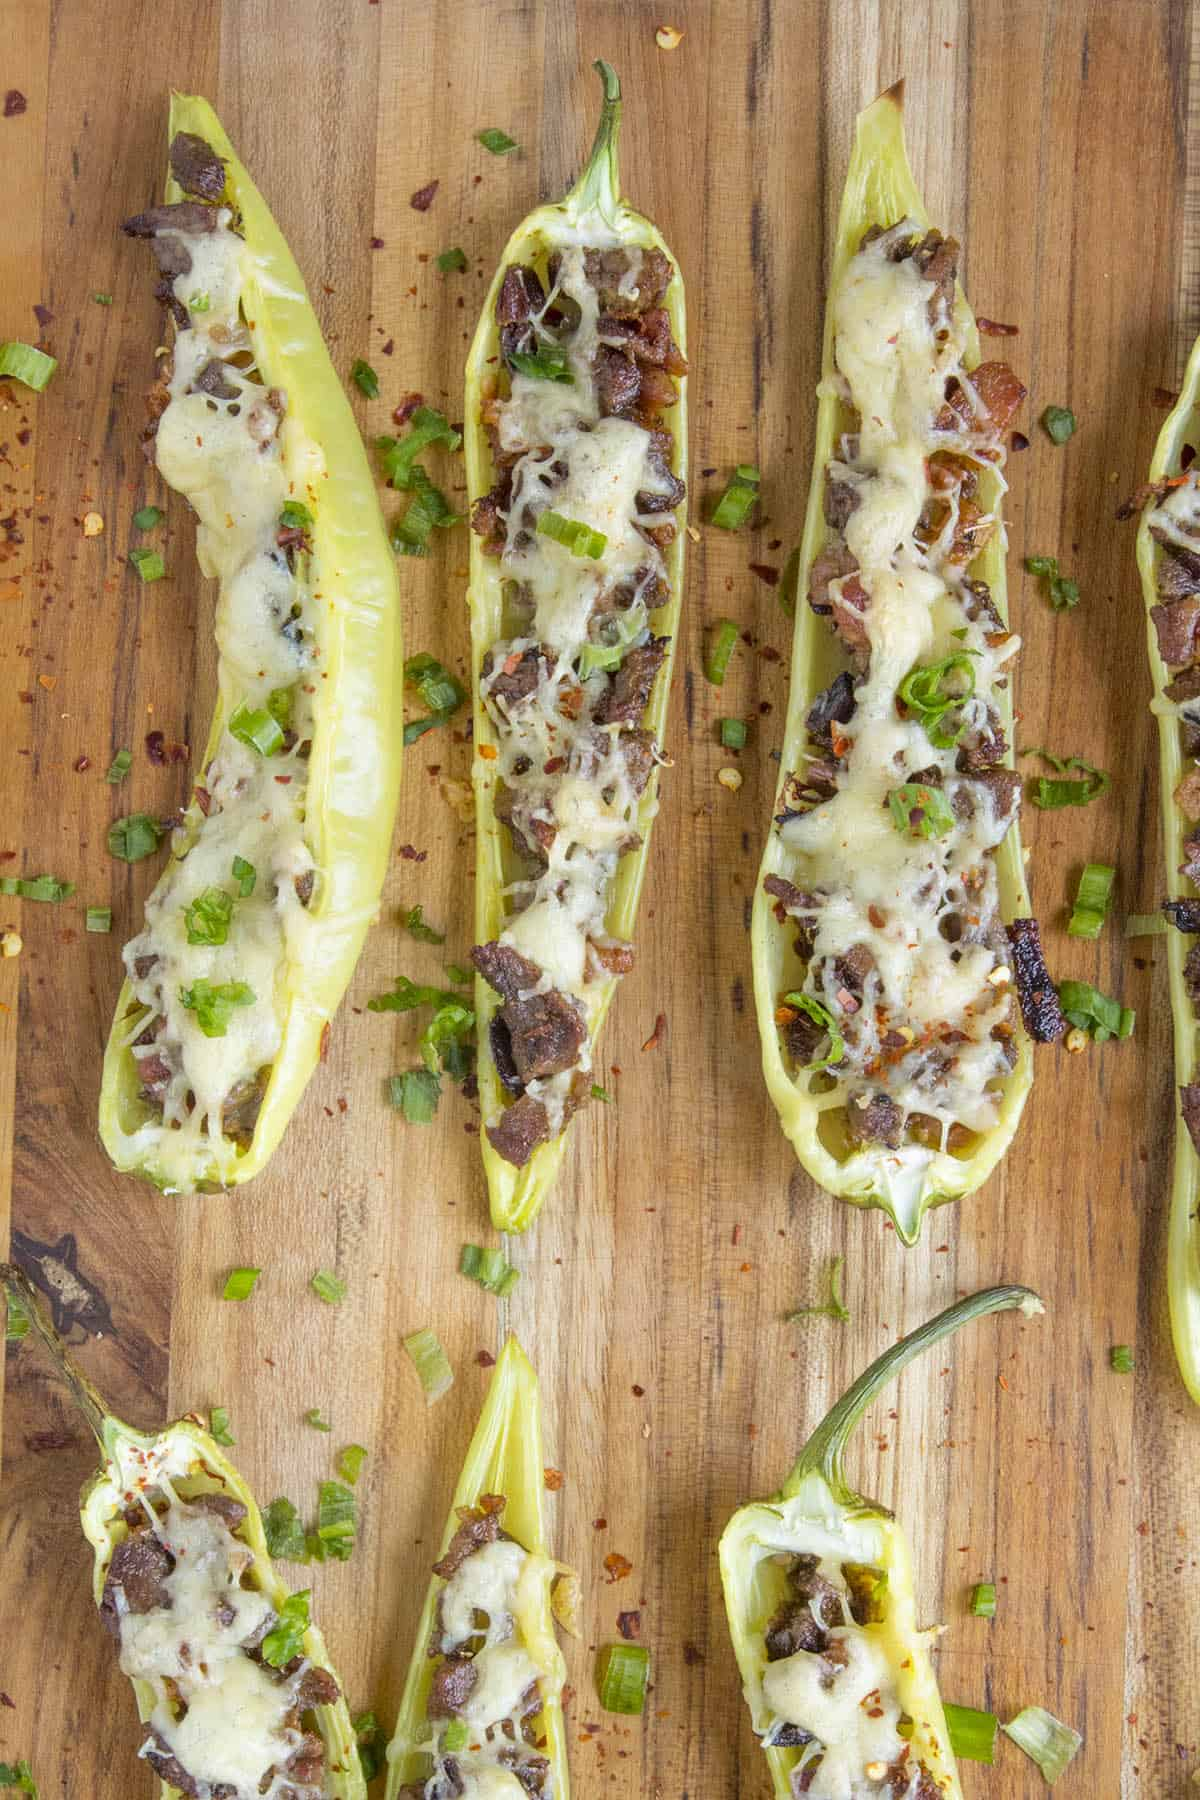 Stuffed Banana Peppers sprinkled with spicy chili flakes